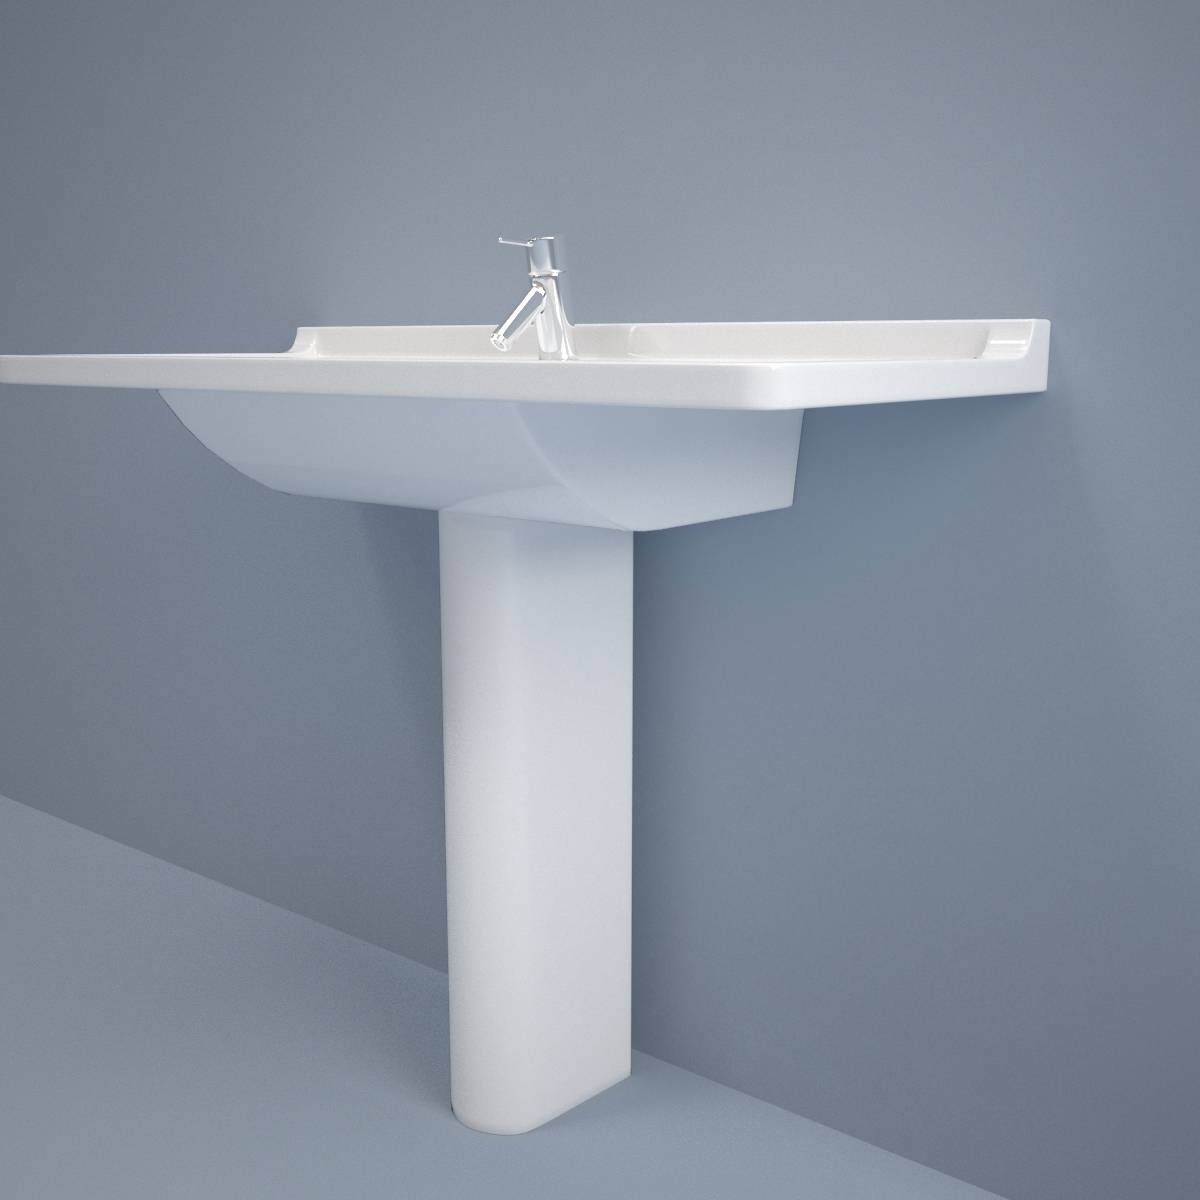 Toilet Sink with Tap - 3D Model